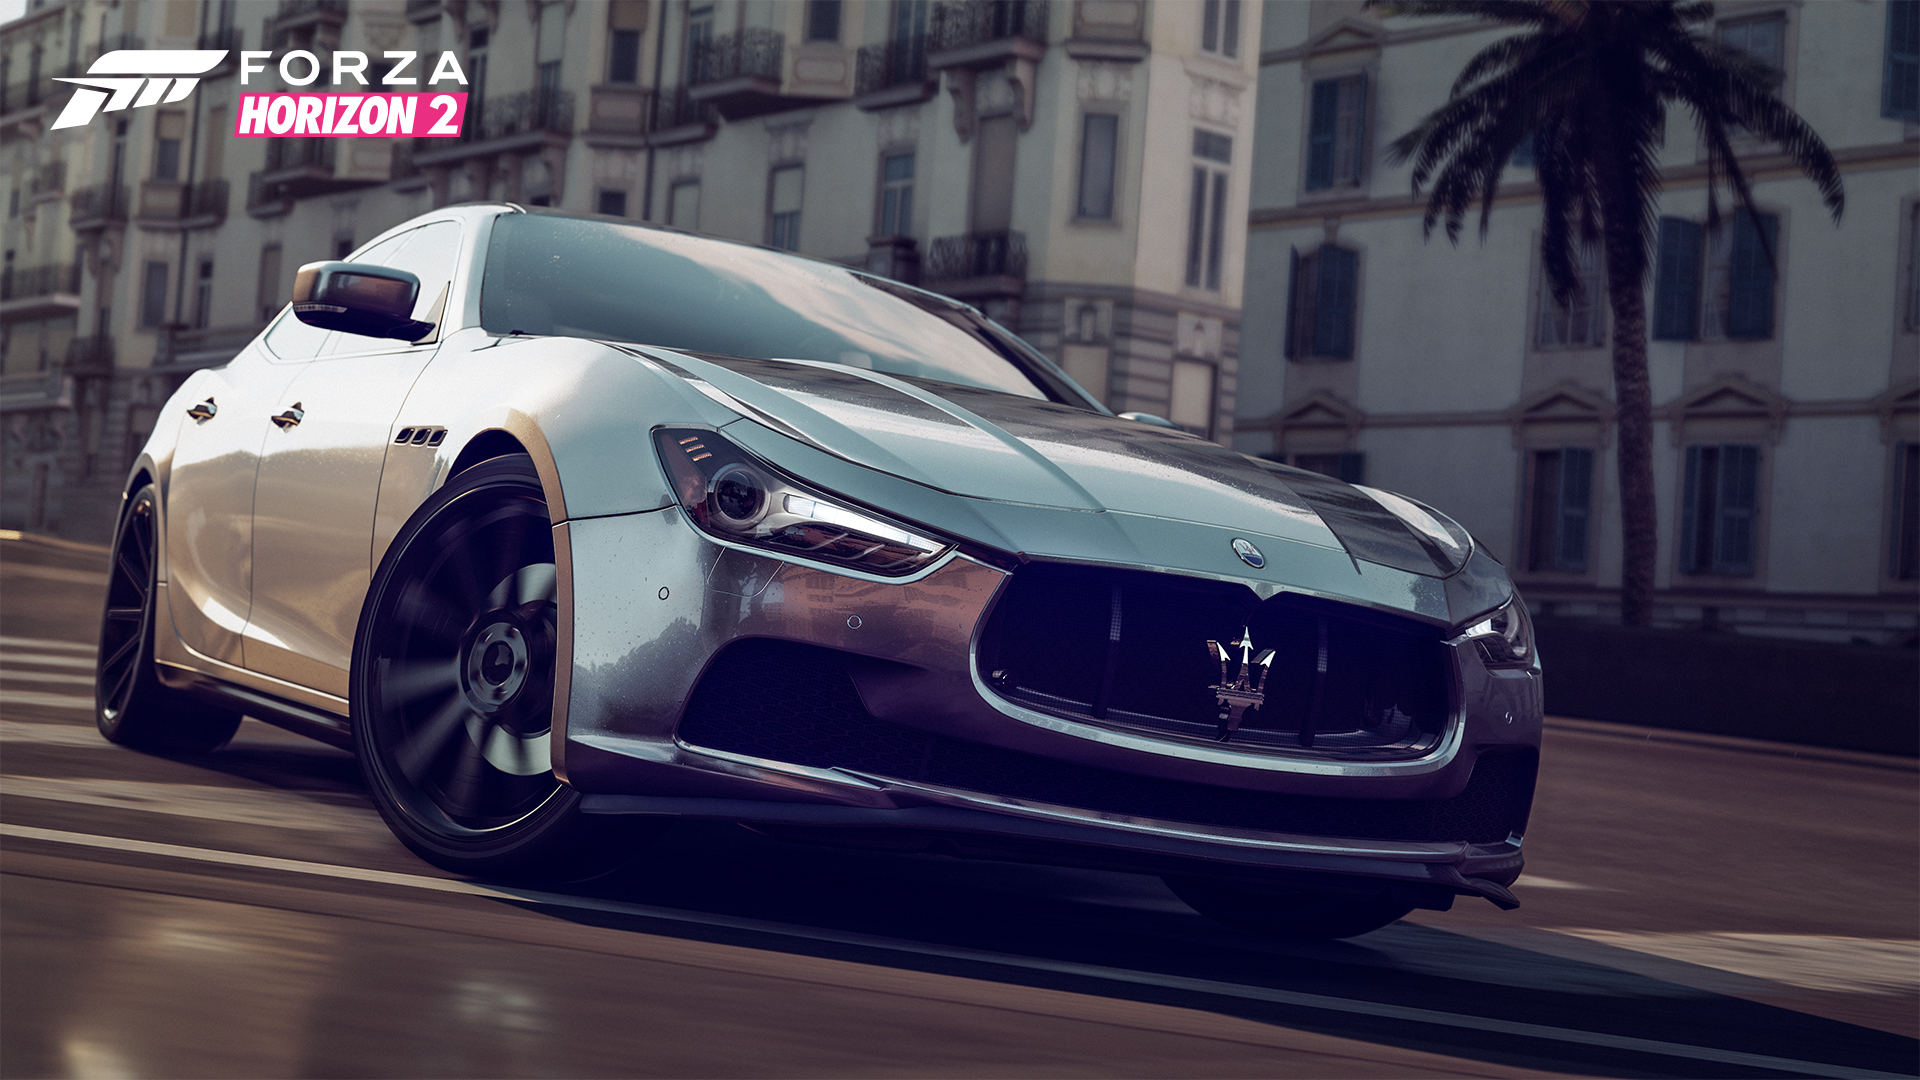 Maserati used in furious 7